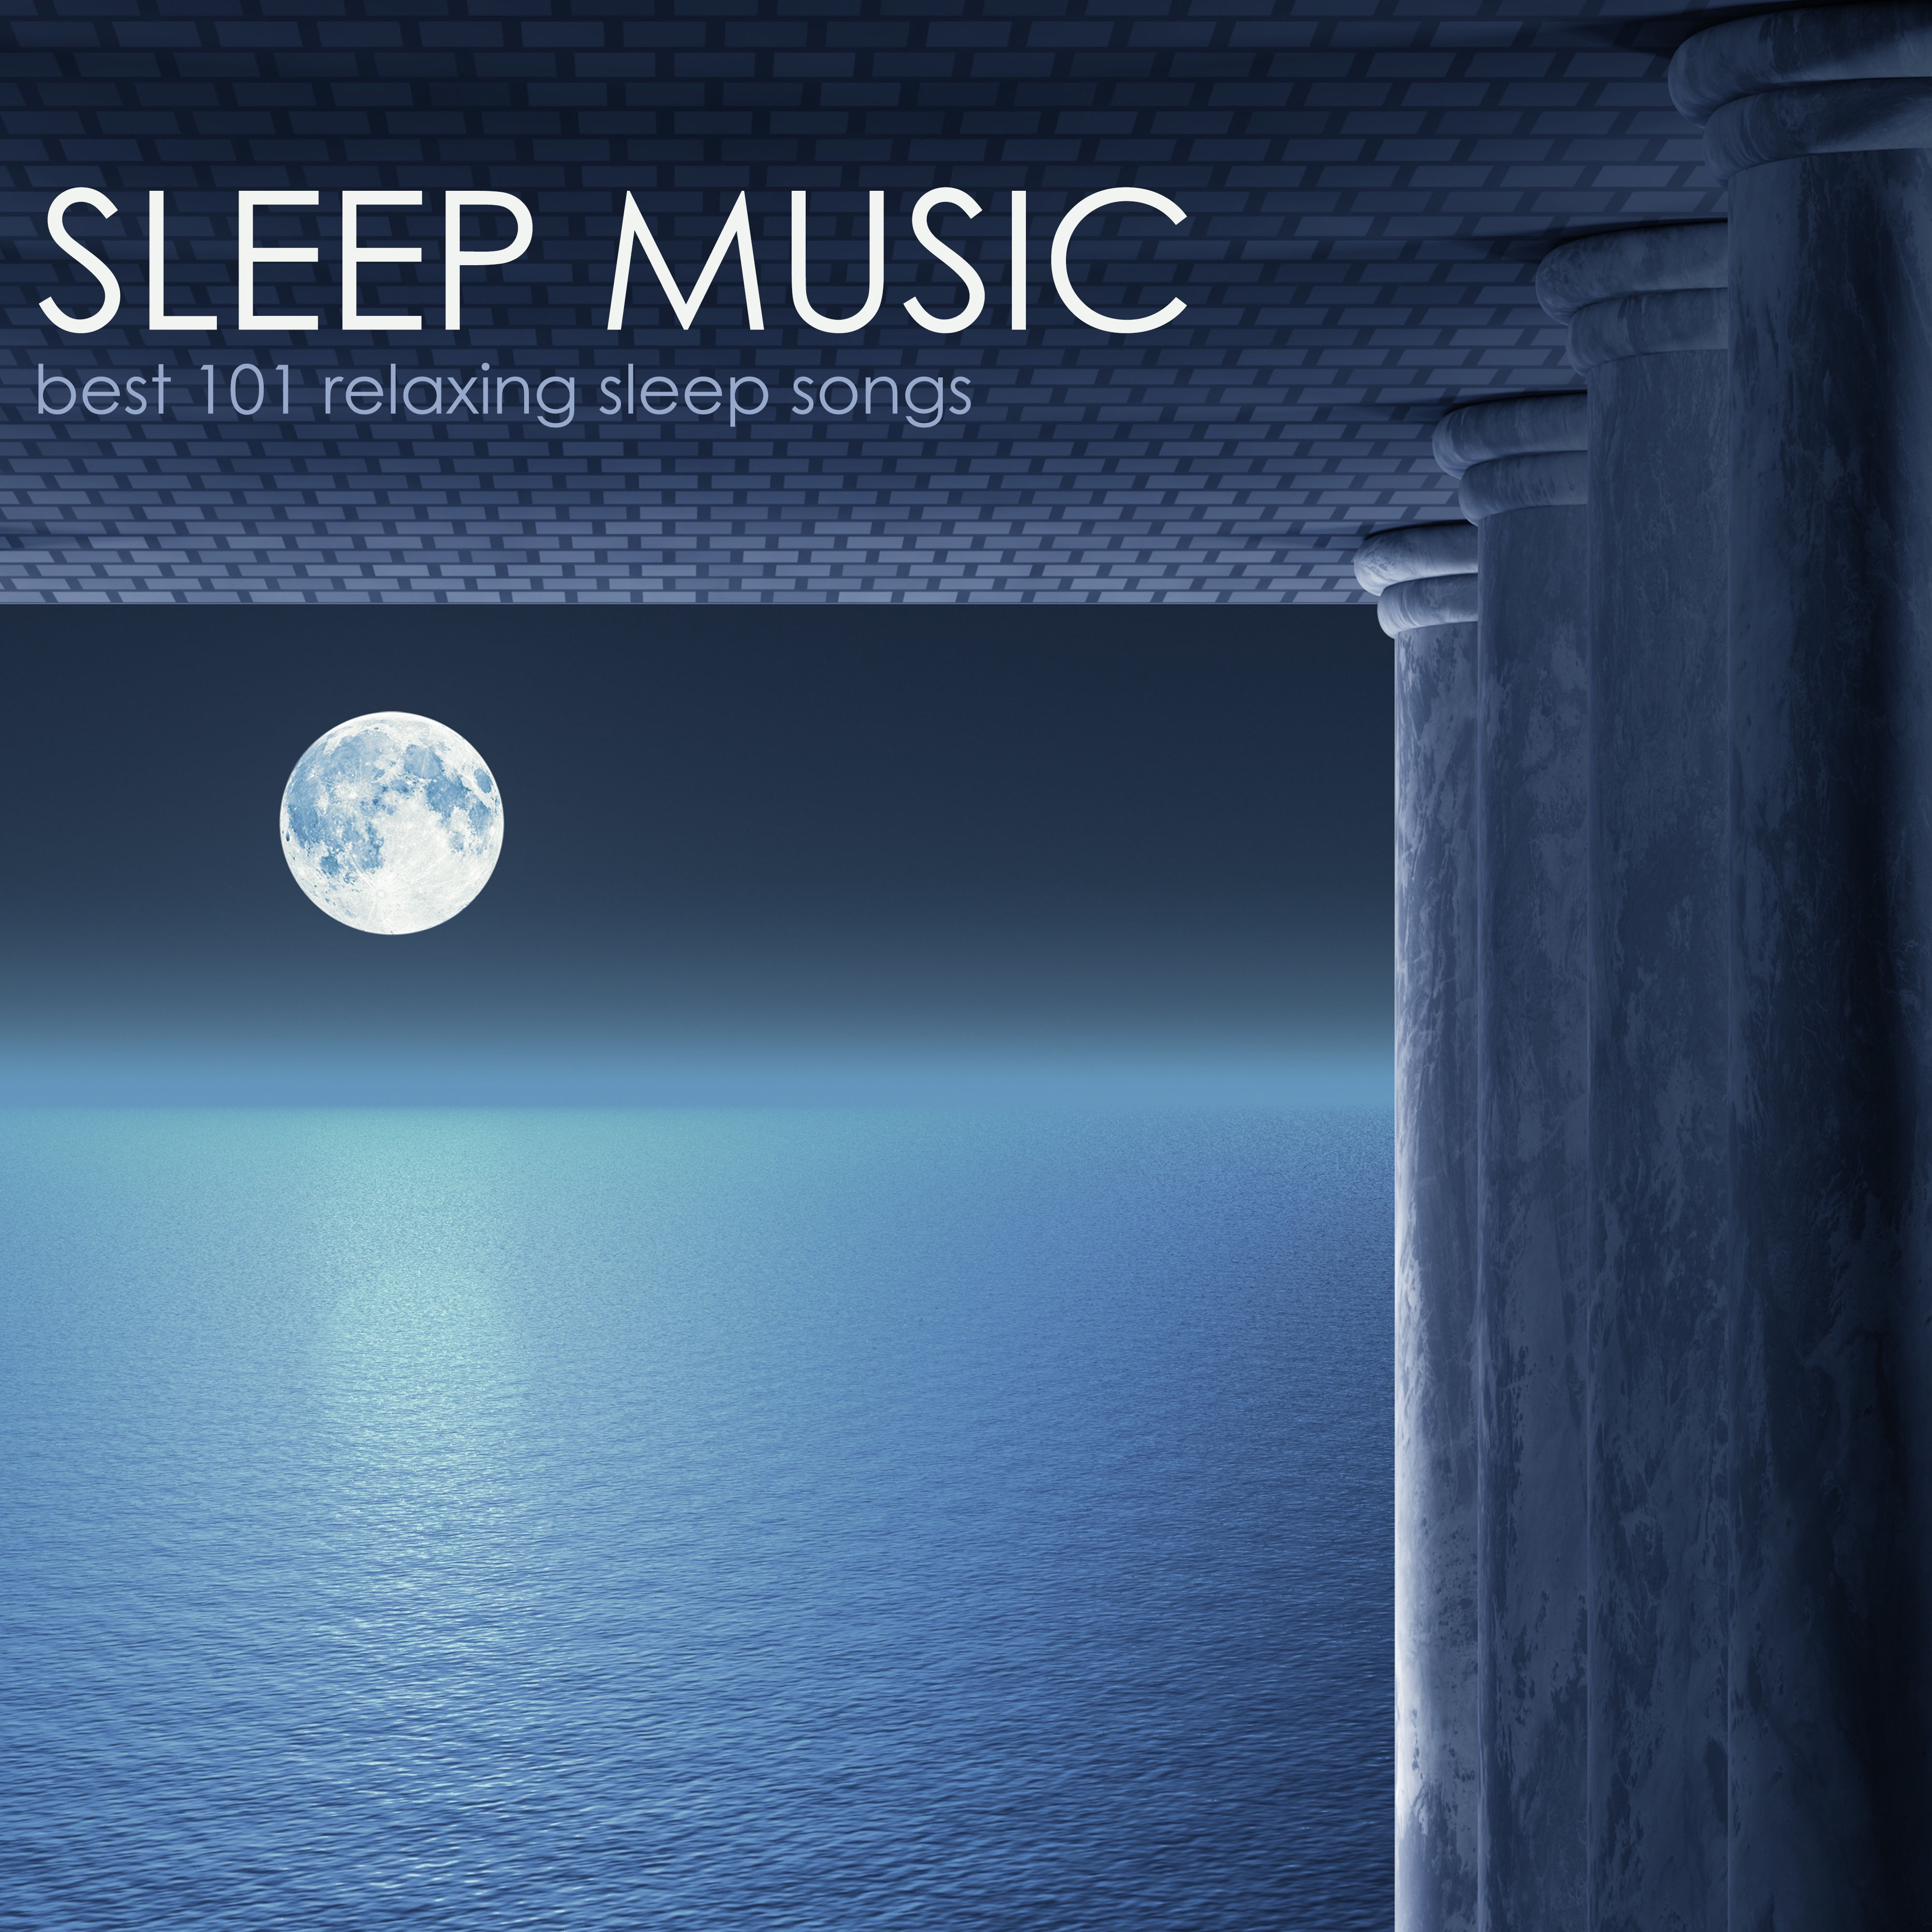 MP3 Songs Online:♫ Dream Maker - Sleep Music System album Sleep Music - Best 101 Relaxing Sleep Songs. Instrumental,Music,New Age listen to music online free without downloading.